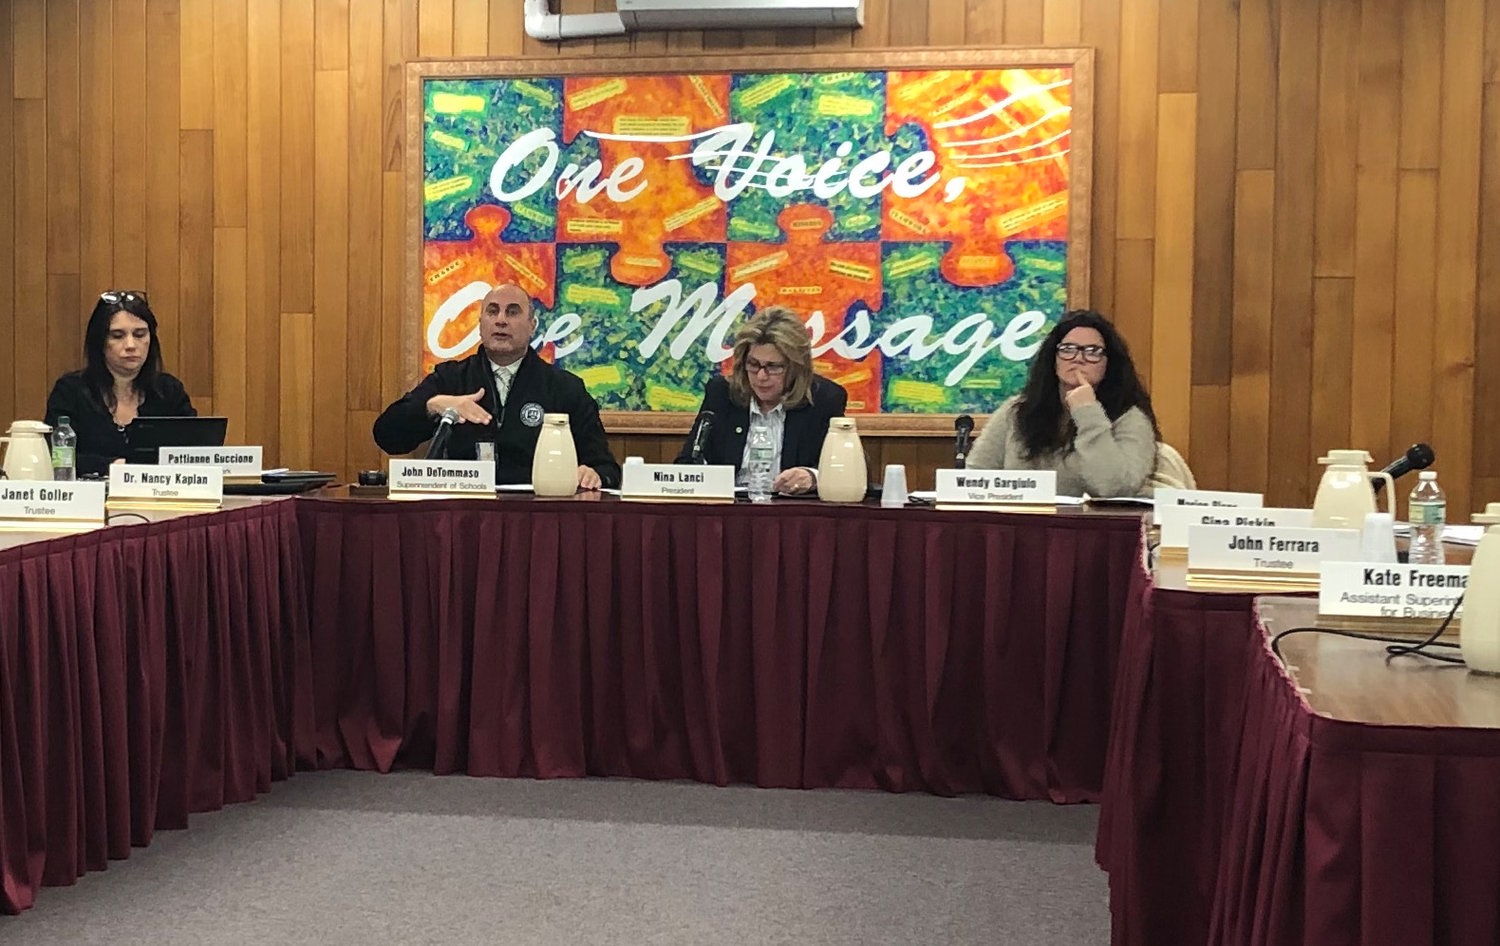 Superintendent John DeTommaso expressed his excitement about a new contract with South Oaks Hospital for the district's wellness centers at the Jan. 2 Board of Education meeting.